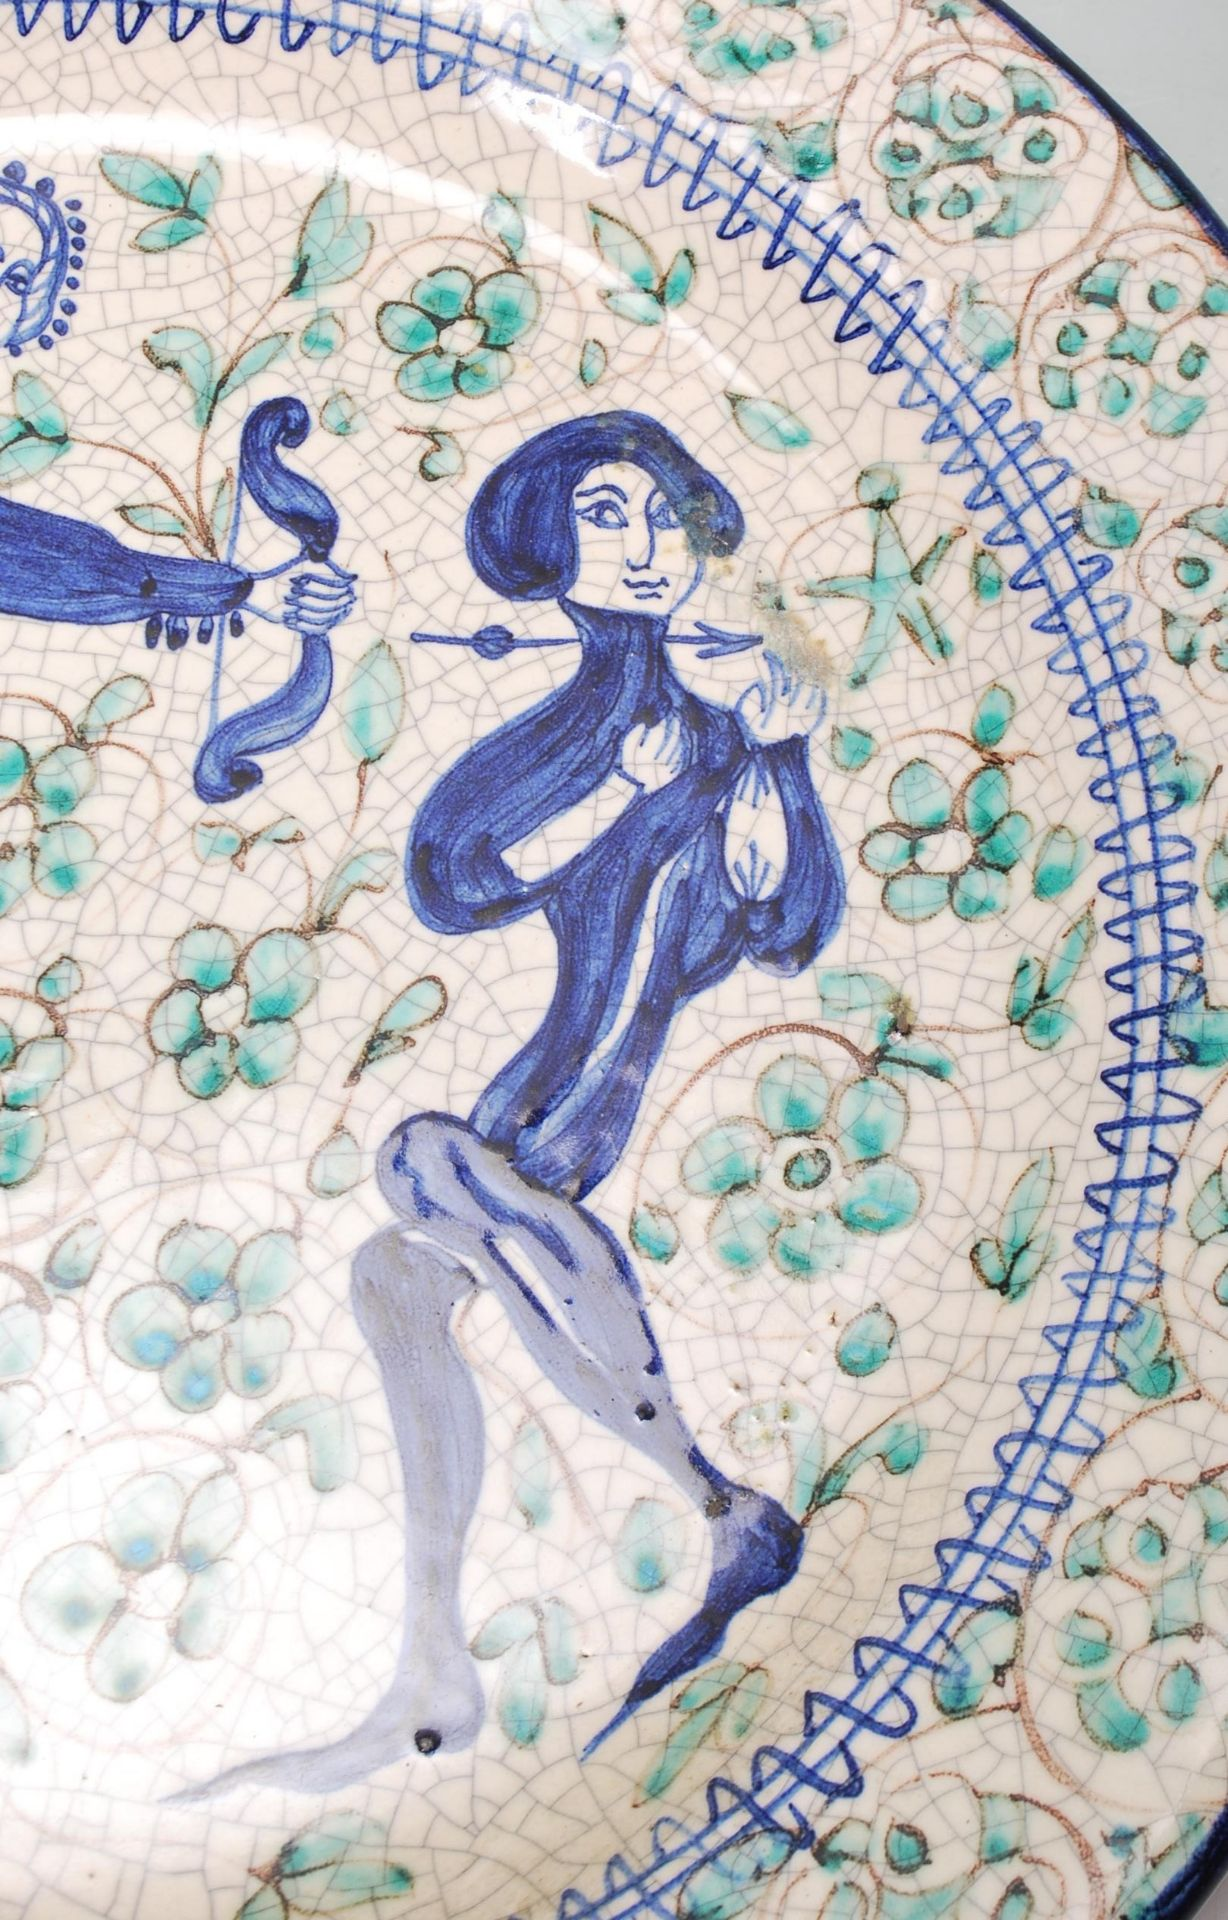 LATE 20TH CENTURY PERSIAN ISLAMIC FAIENCE CHARGER - Image 4 of 7